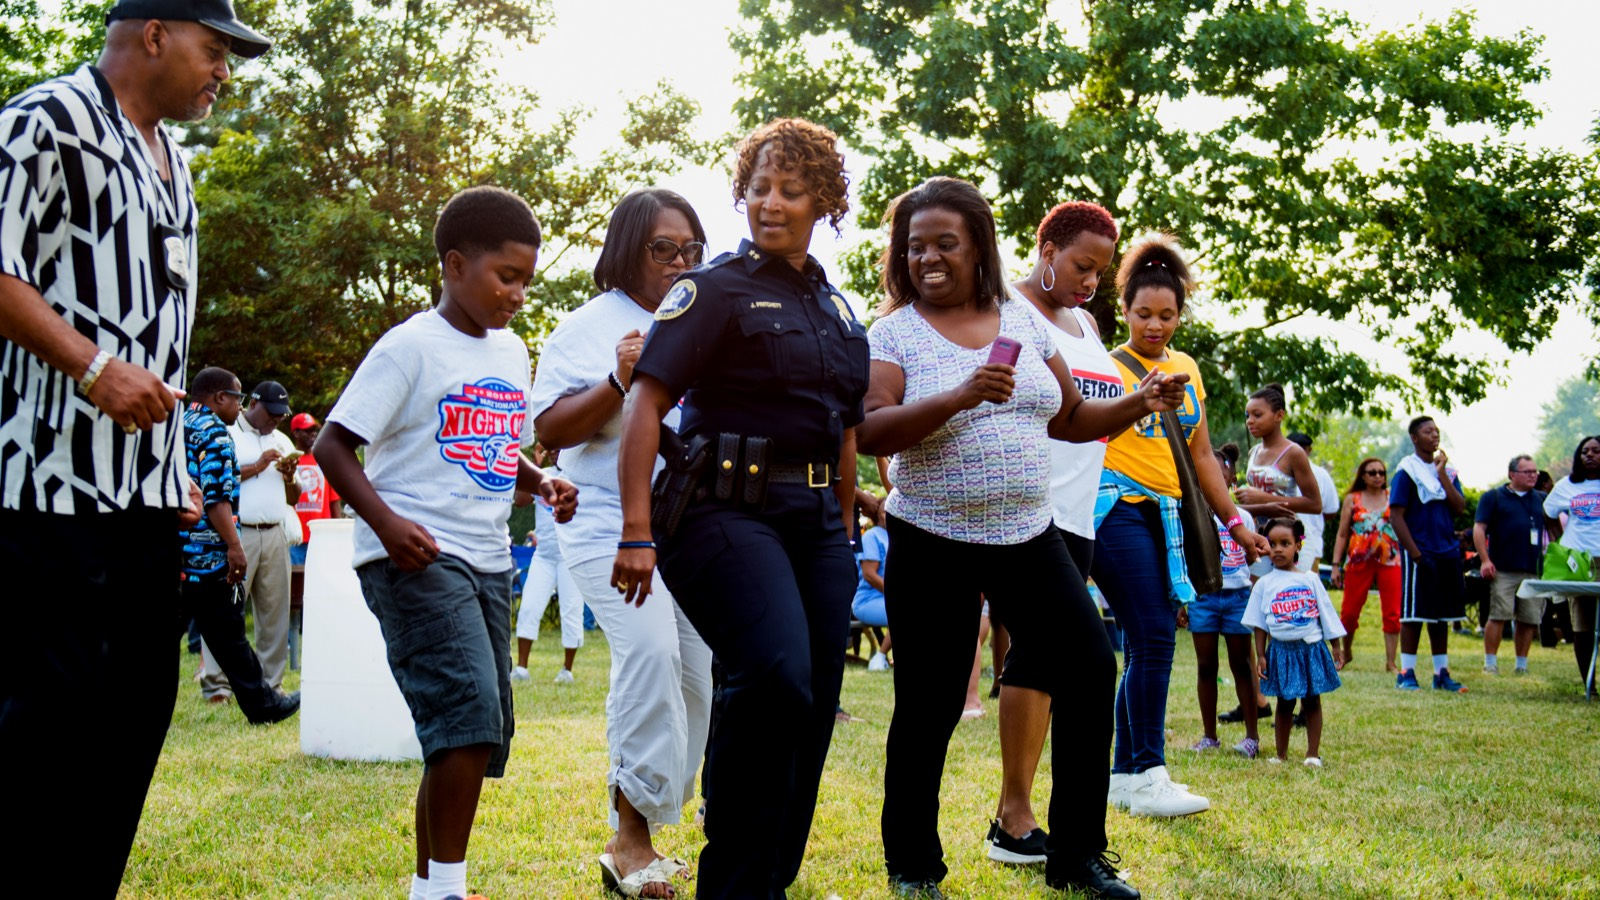 Photo via National Night Out www.natw.org